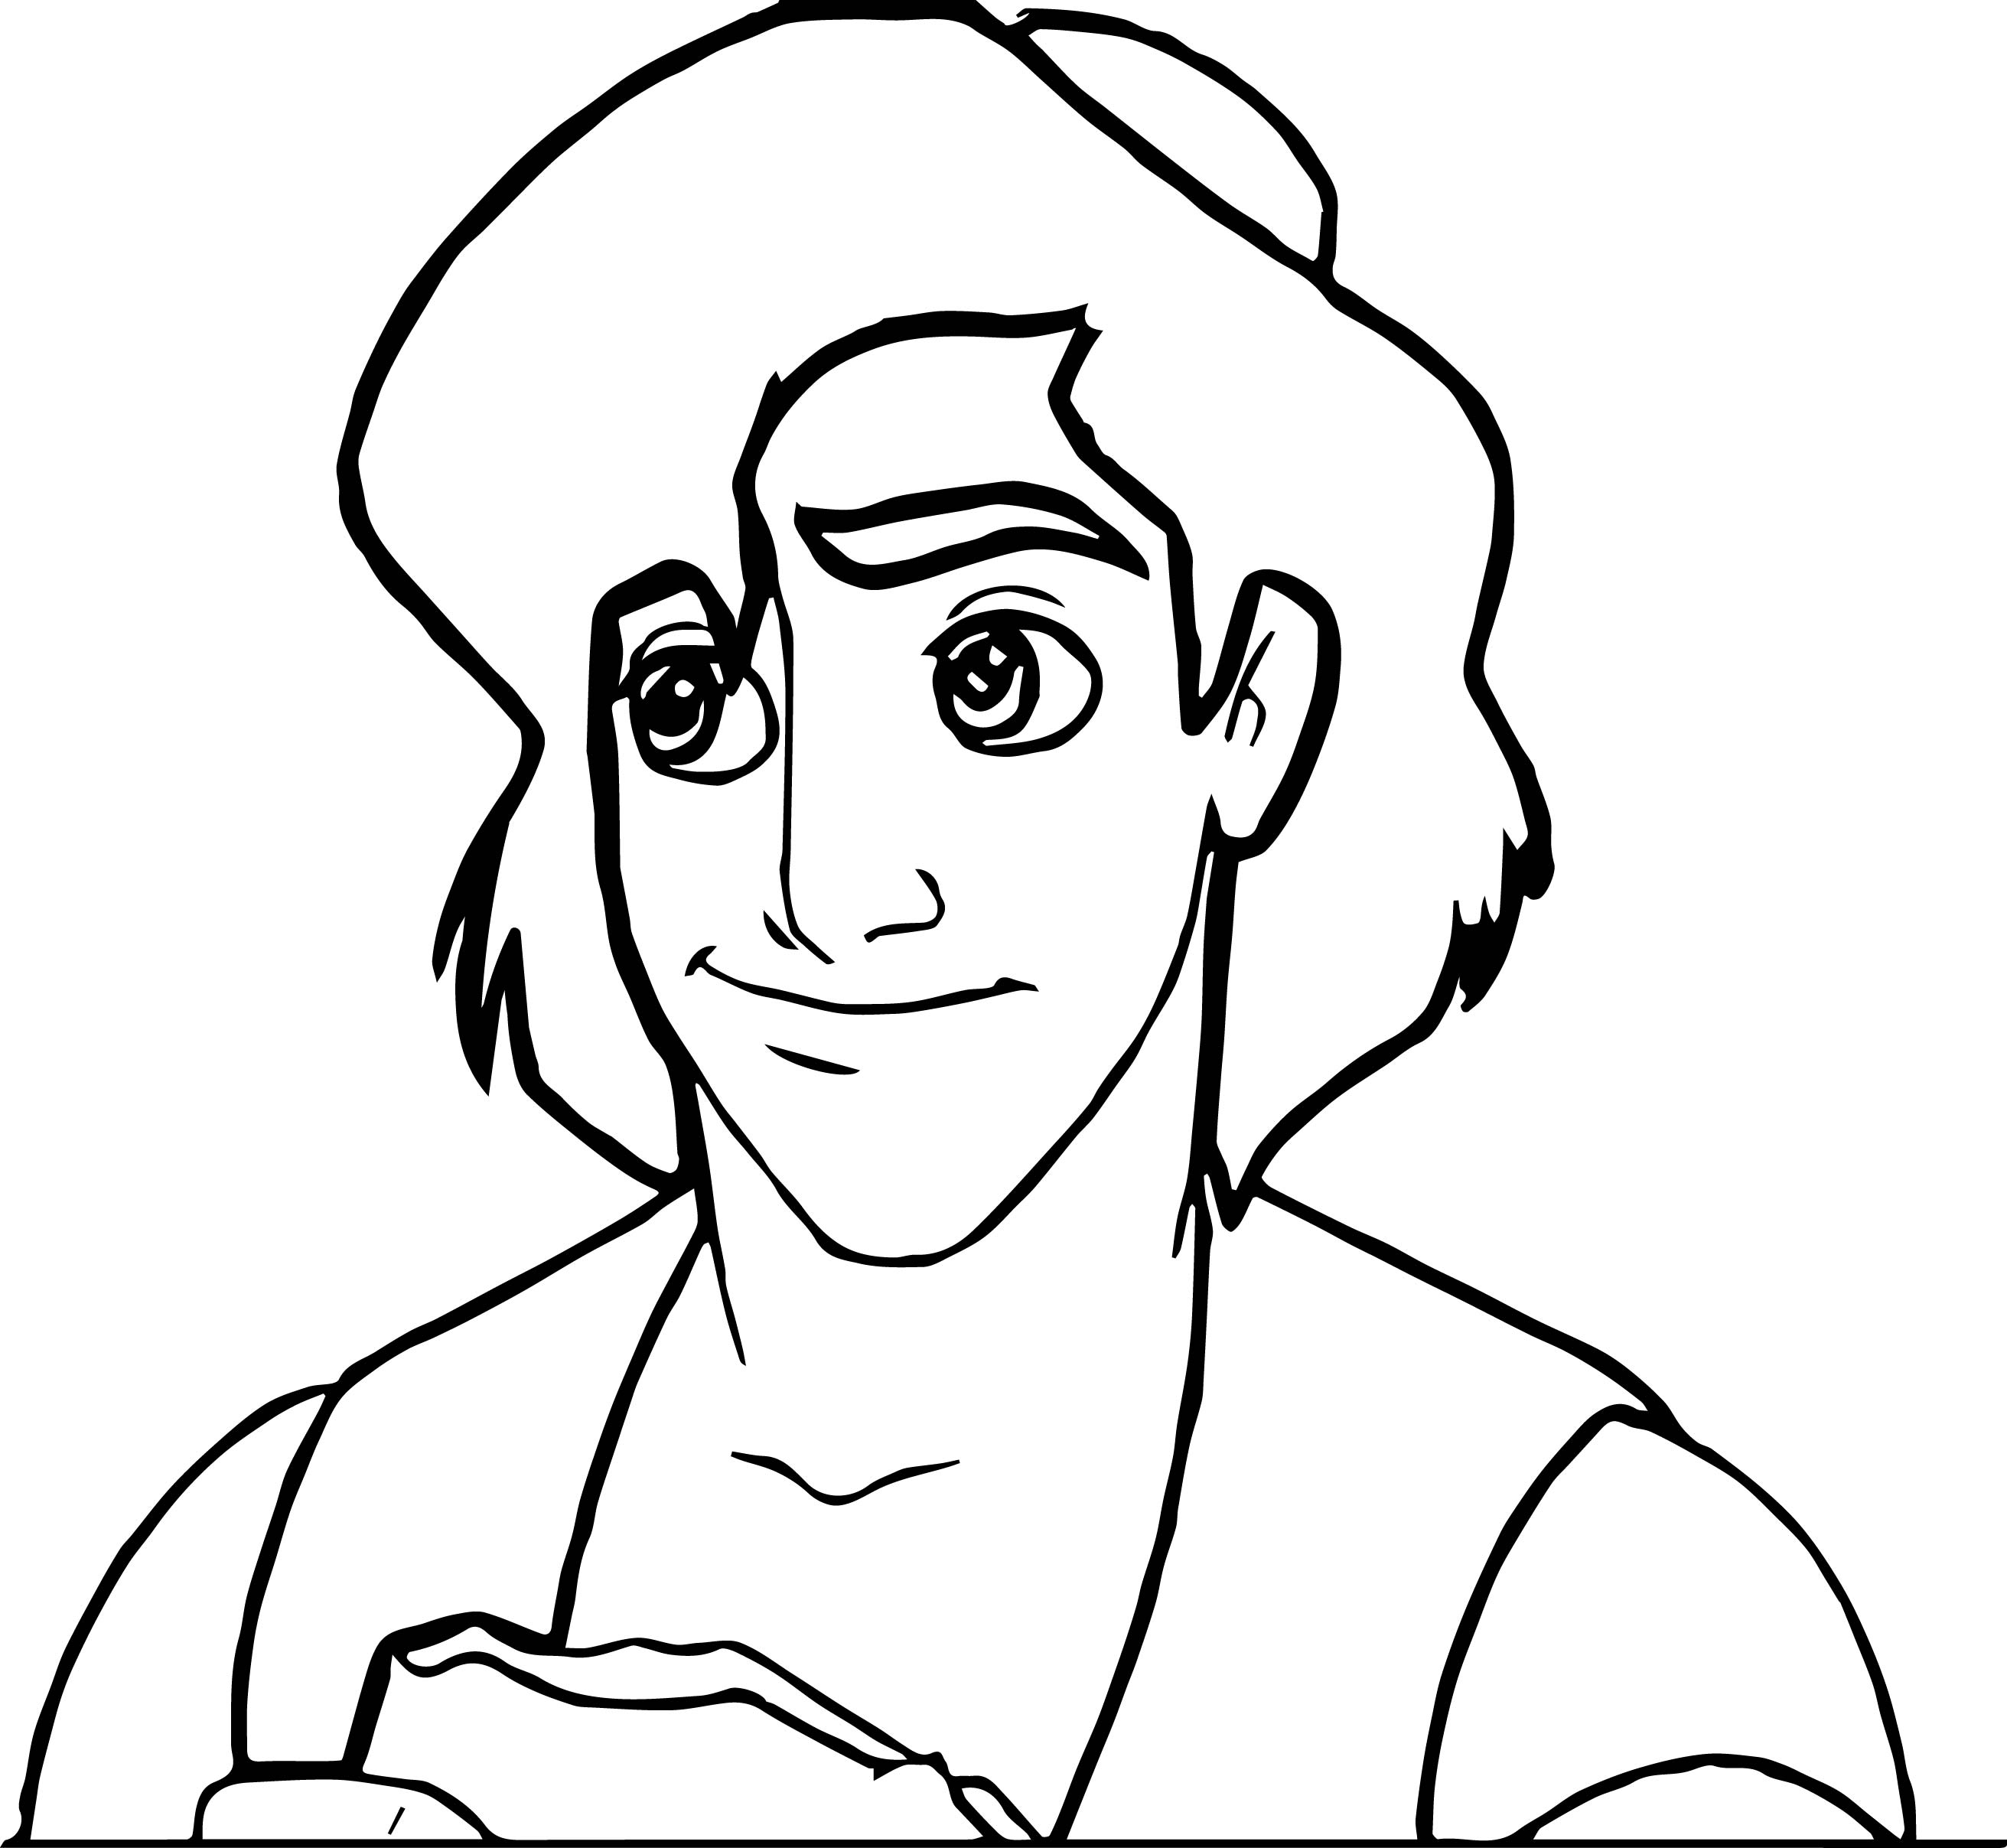 Walt Disney Prince Aladdin Walt Disney Characters Bread Coloring Page